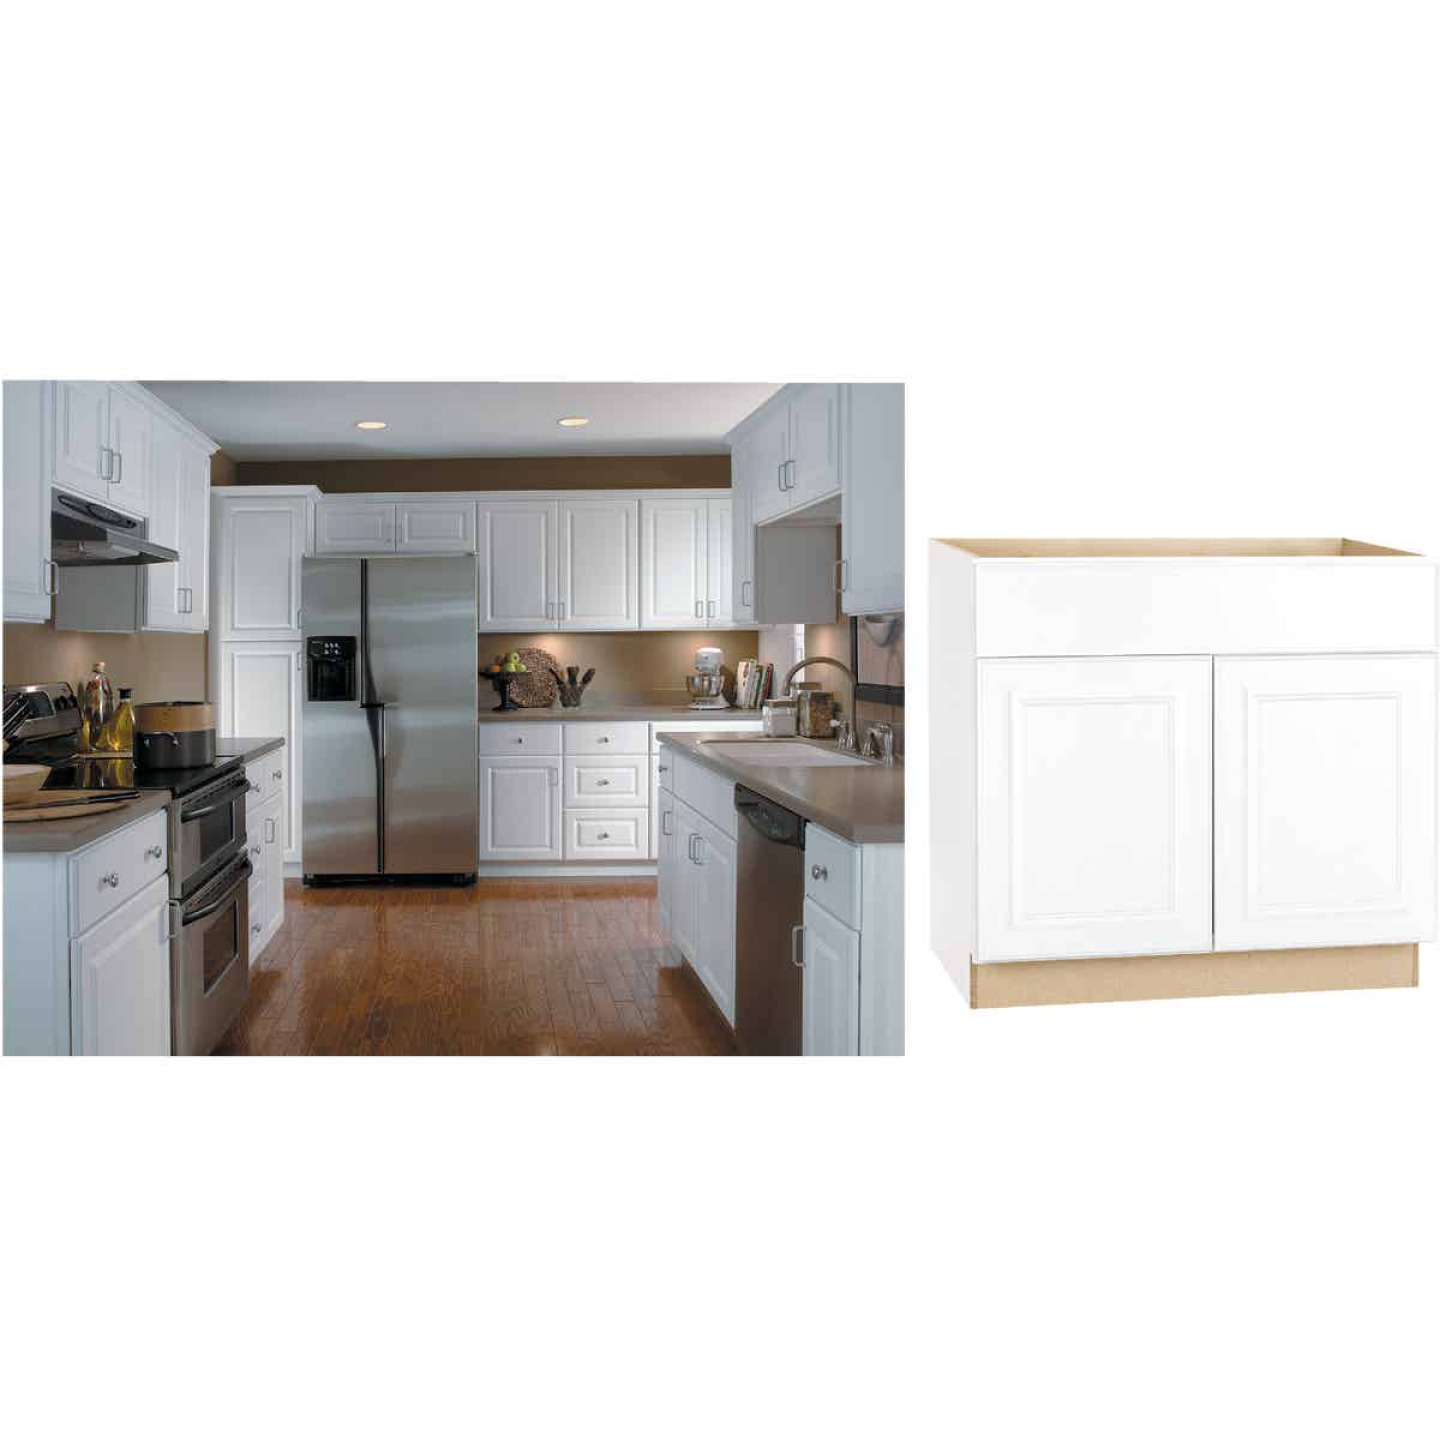 Continental Cabinets Hamilton 36 In. W x 34-1/2 In. H x 24 In. D Satin White Maple Base Kitchen Cabinet Image 1